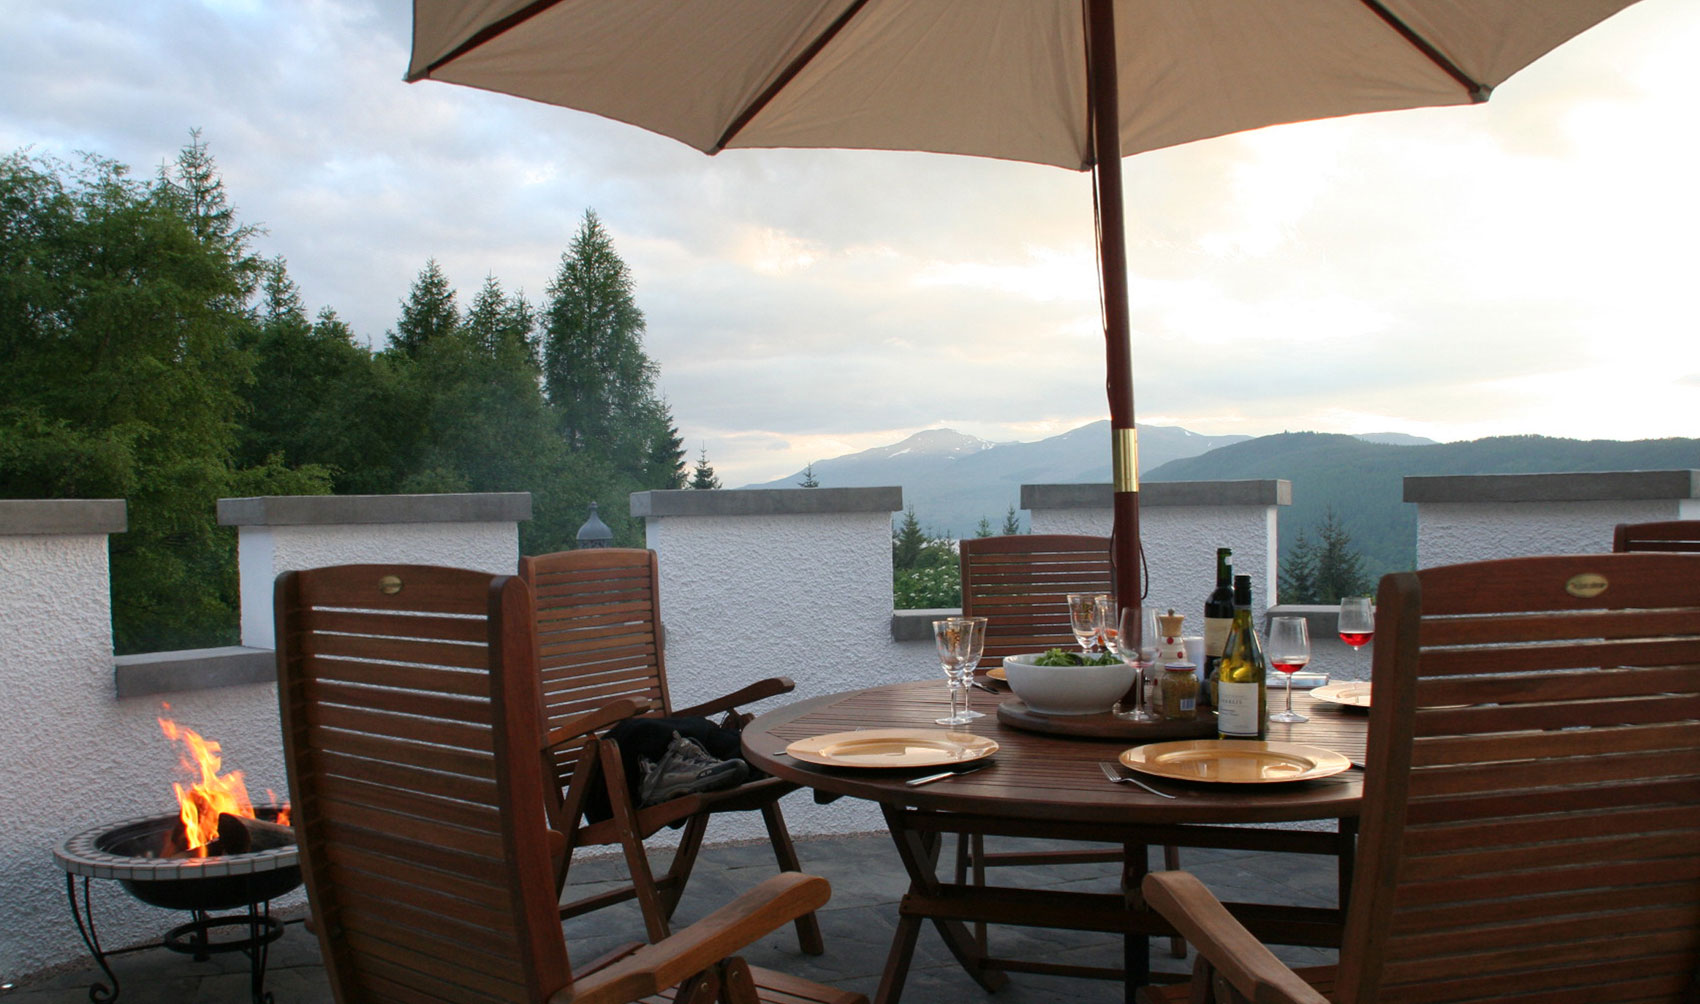 rooftop terrace with table chairs and parasol overlooking montains